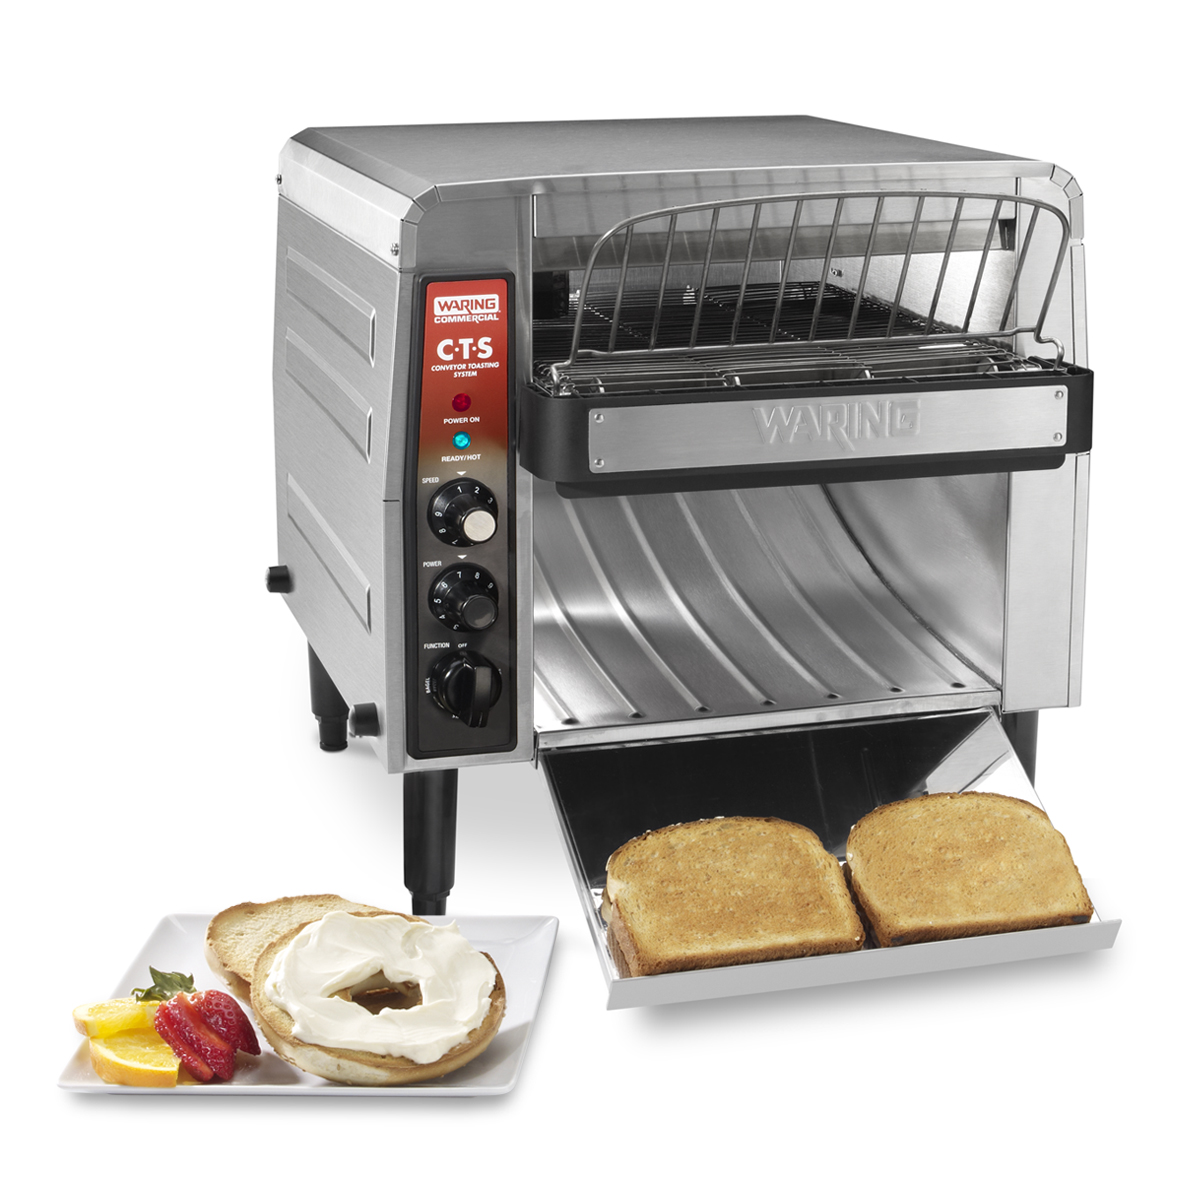 Electric Conveyor Toaster ~ Waring cts b electric conveyor toaster oven slices